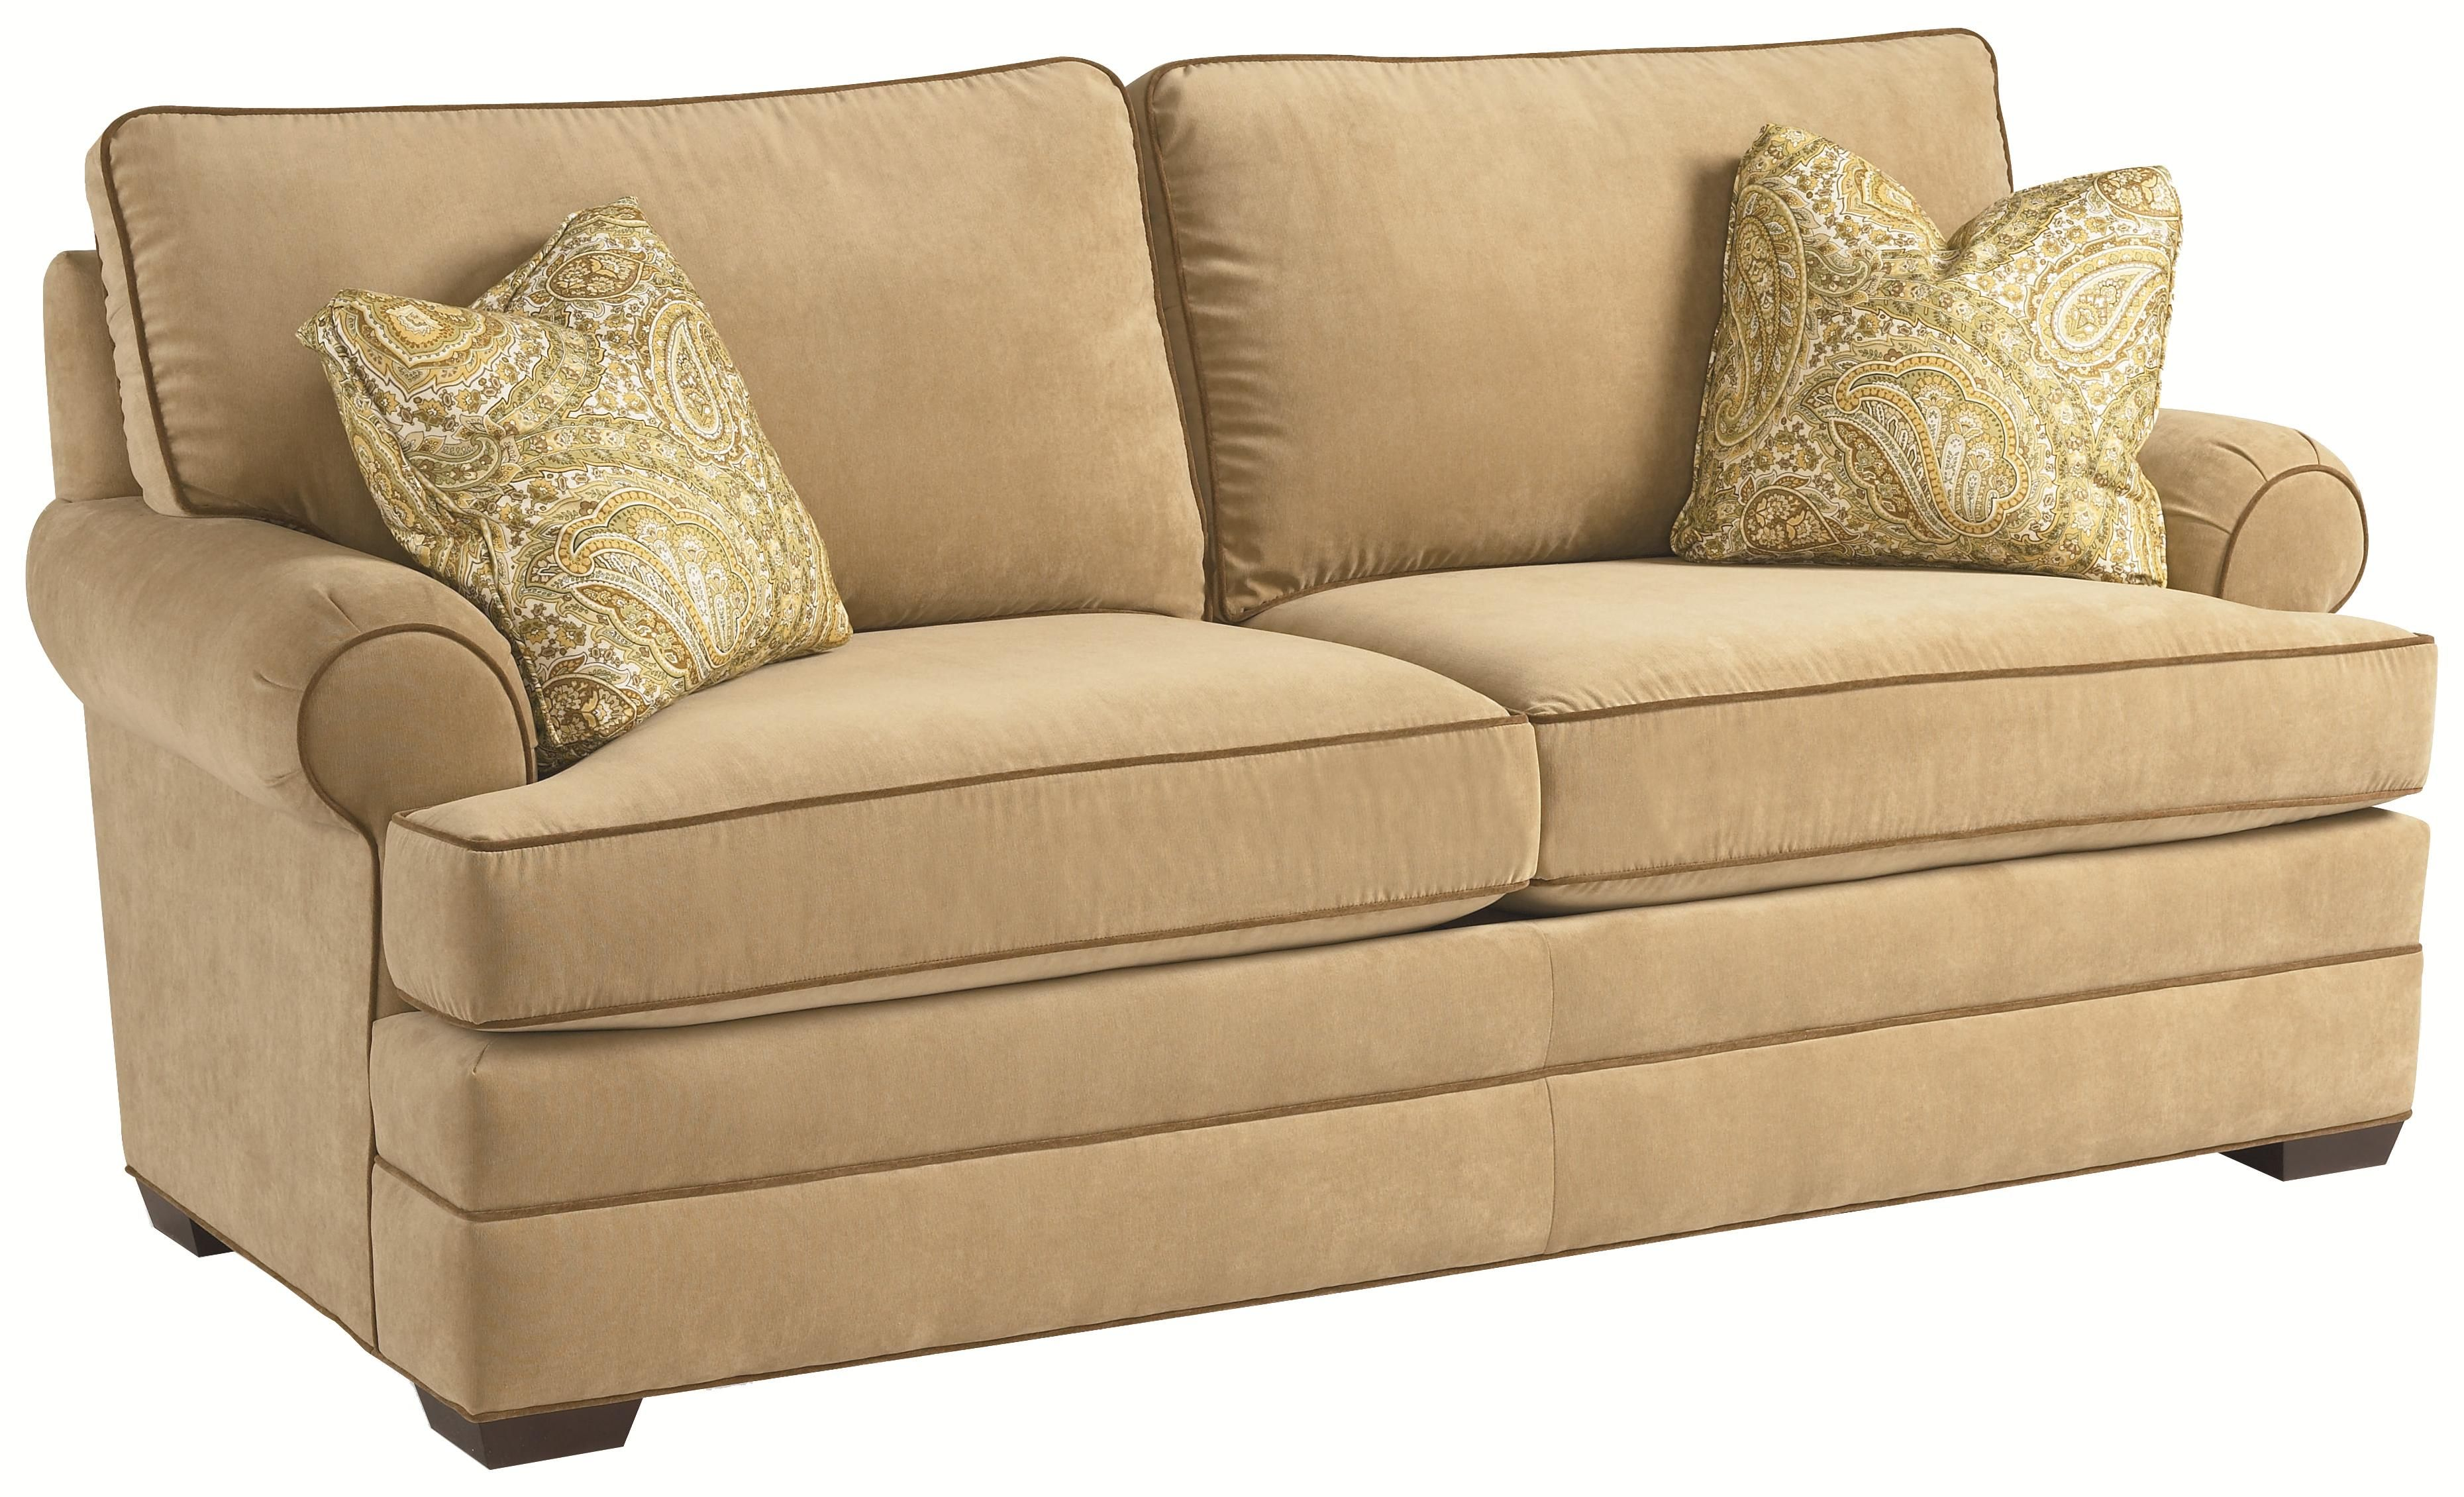 Chesapeake Two Seat Sleeper Sofa By Thomasville